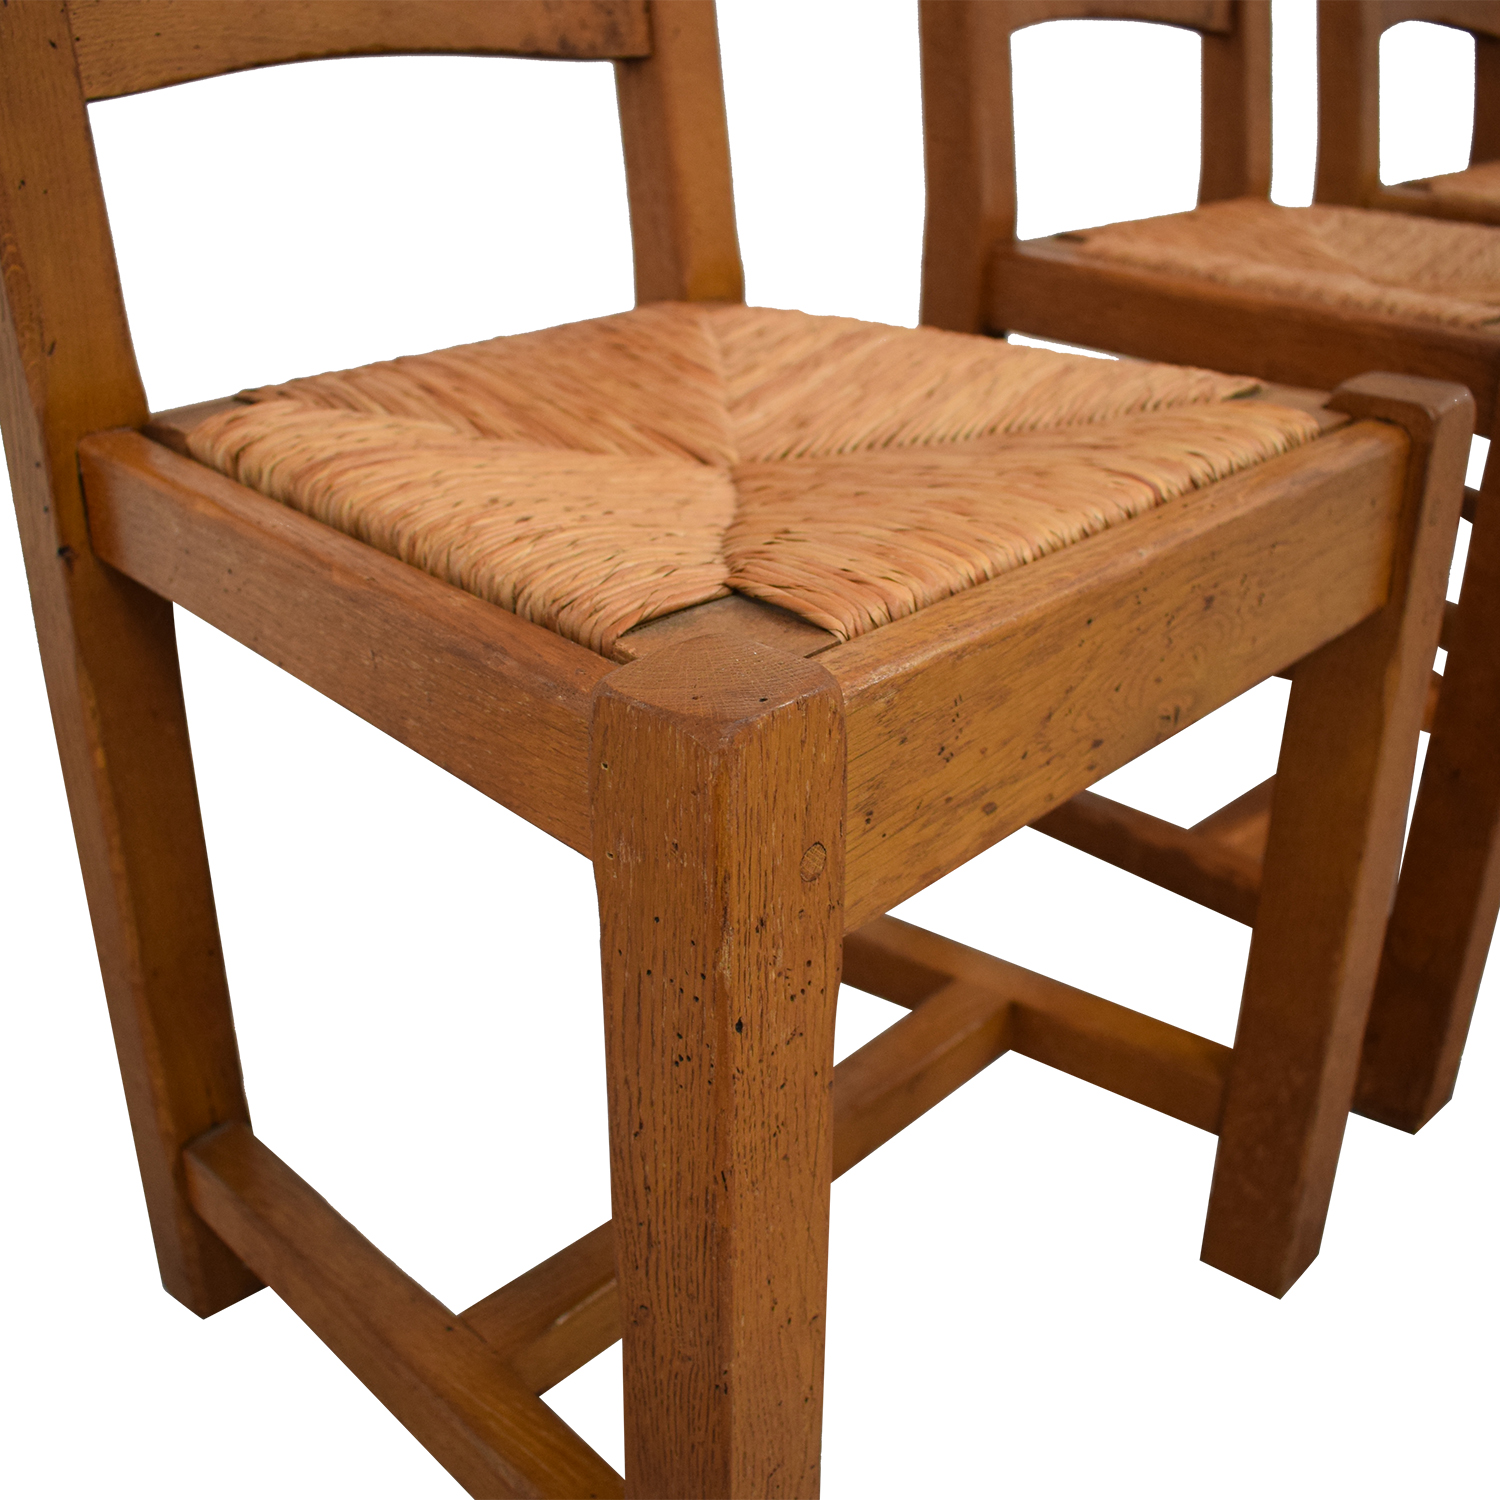 Crate & Barrel Crate & Barrel French Farm Dining Chairs Dining Chairs